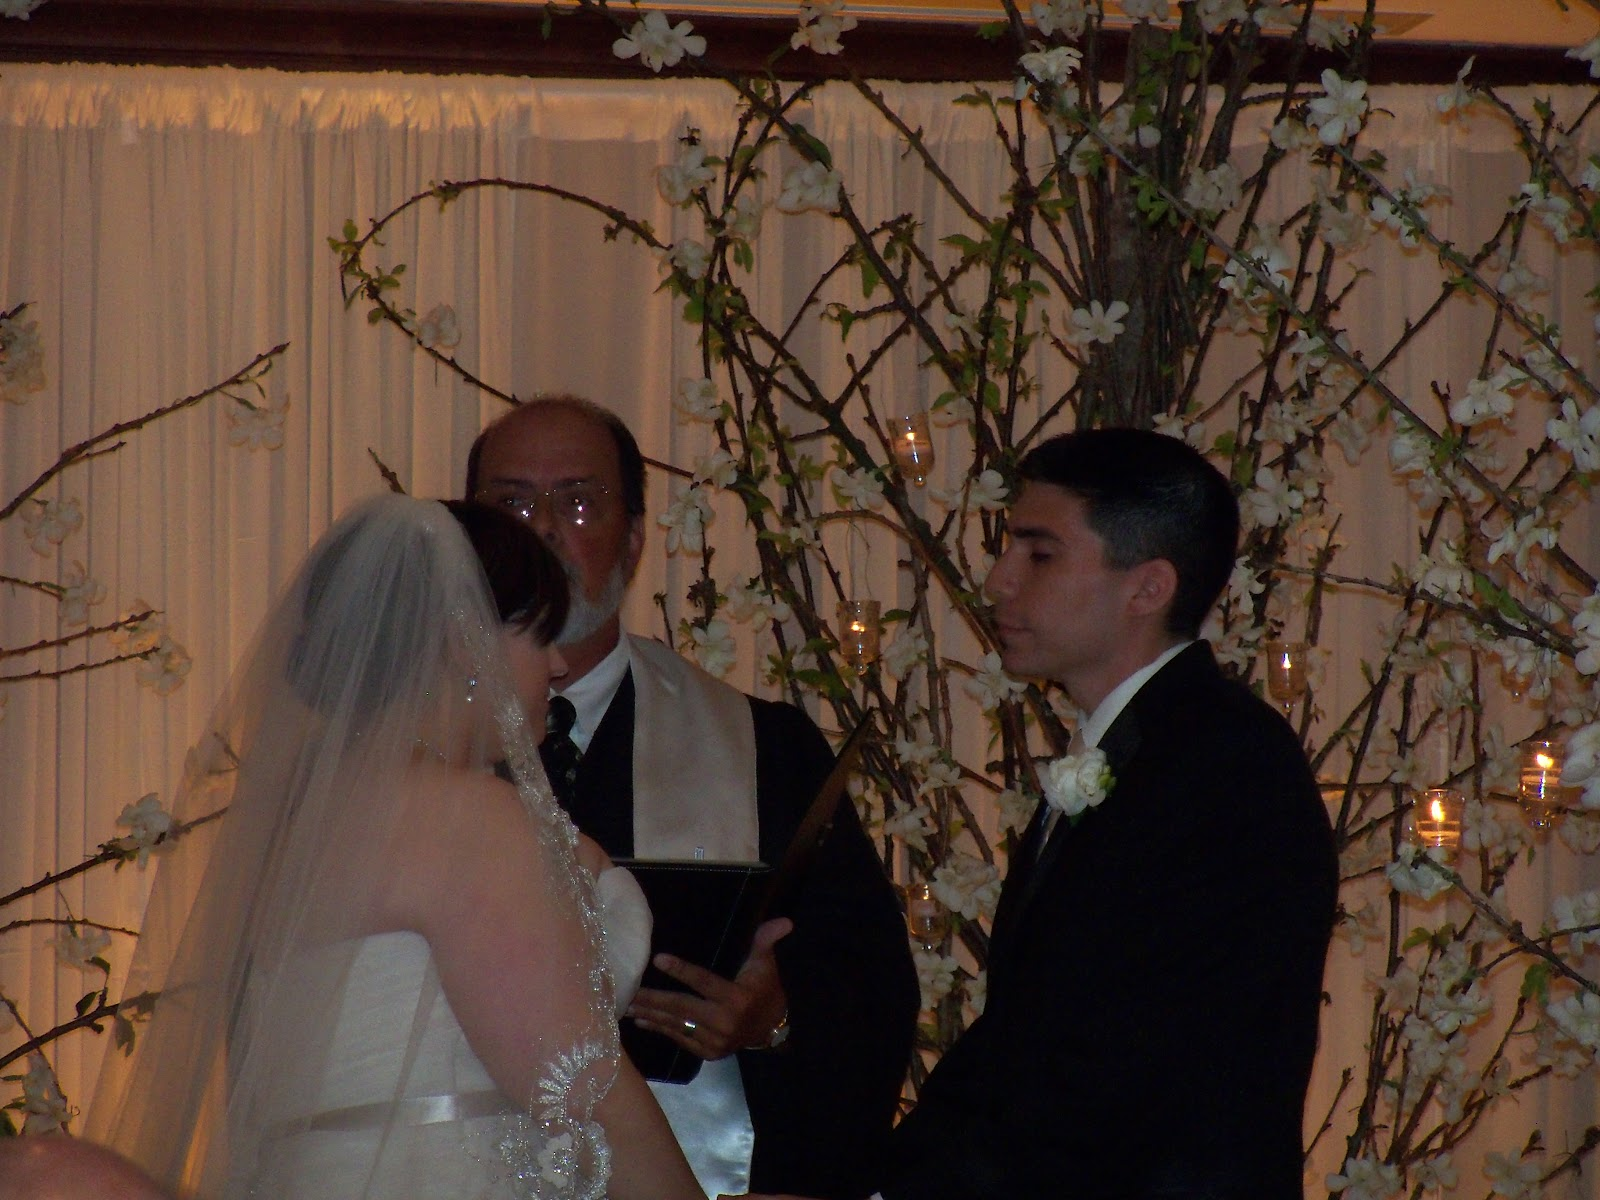 Megan Neal and Mark Suarez wedding - 100_8295.JPG